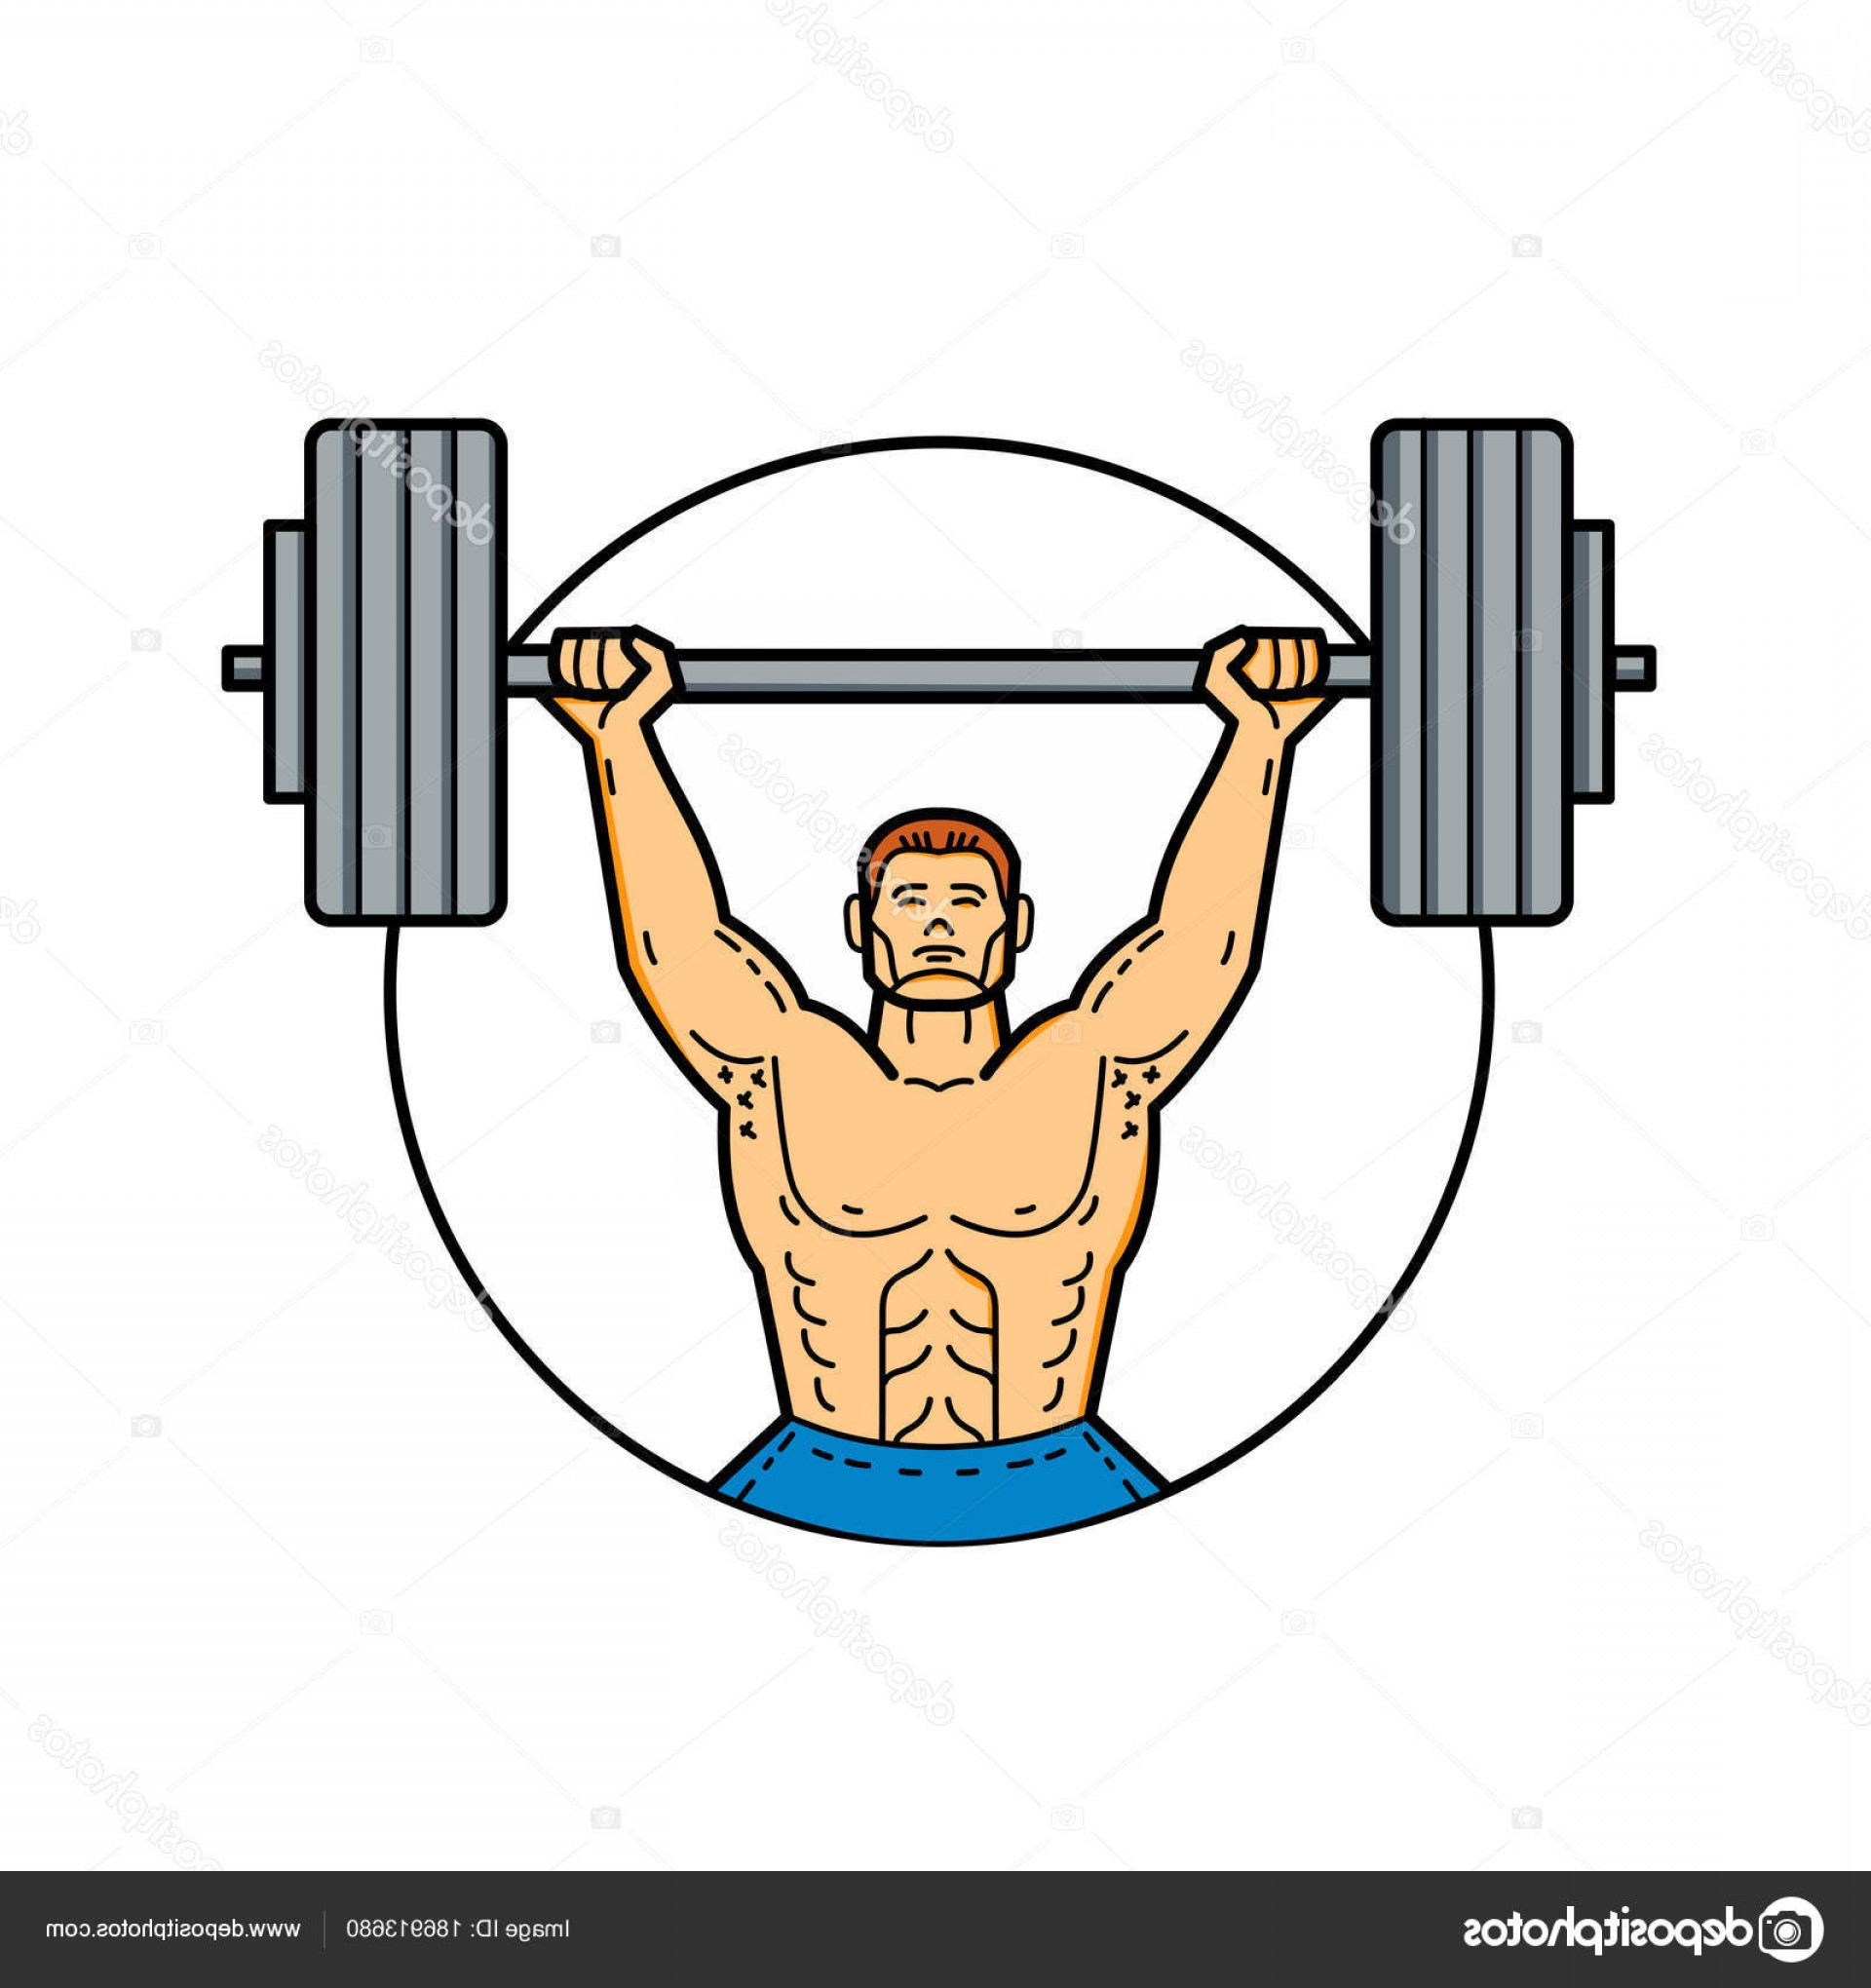 Weightlifter Vector Art: Stock Illustration Weightlifter Lifting Barbell Mono Line